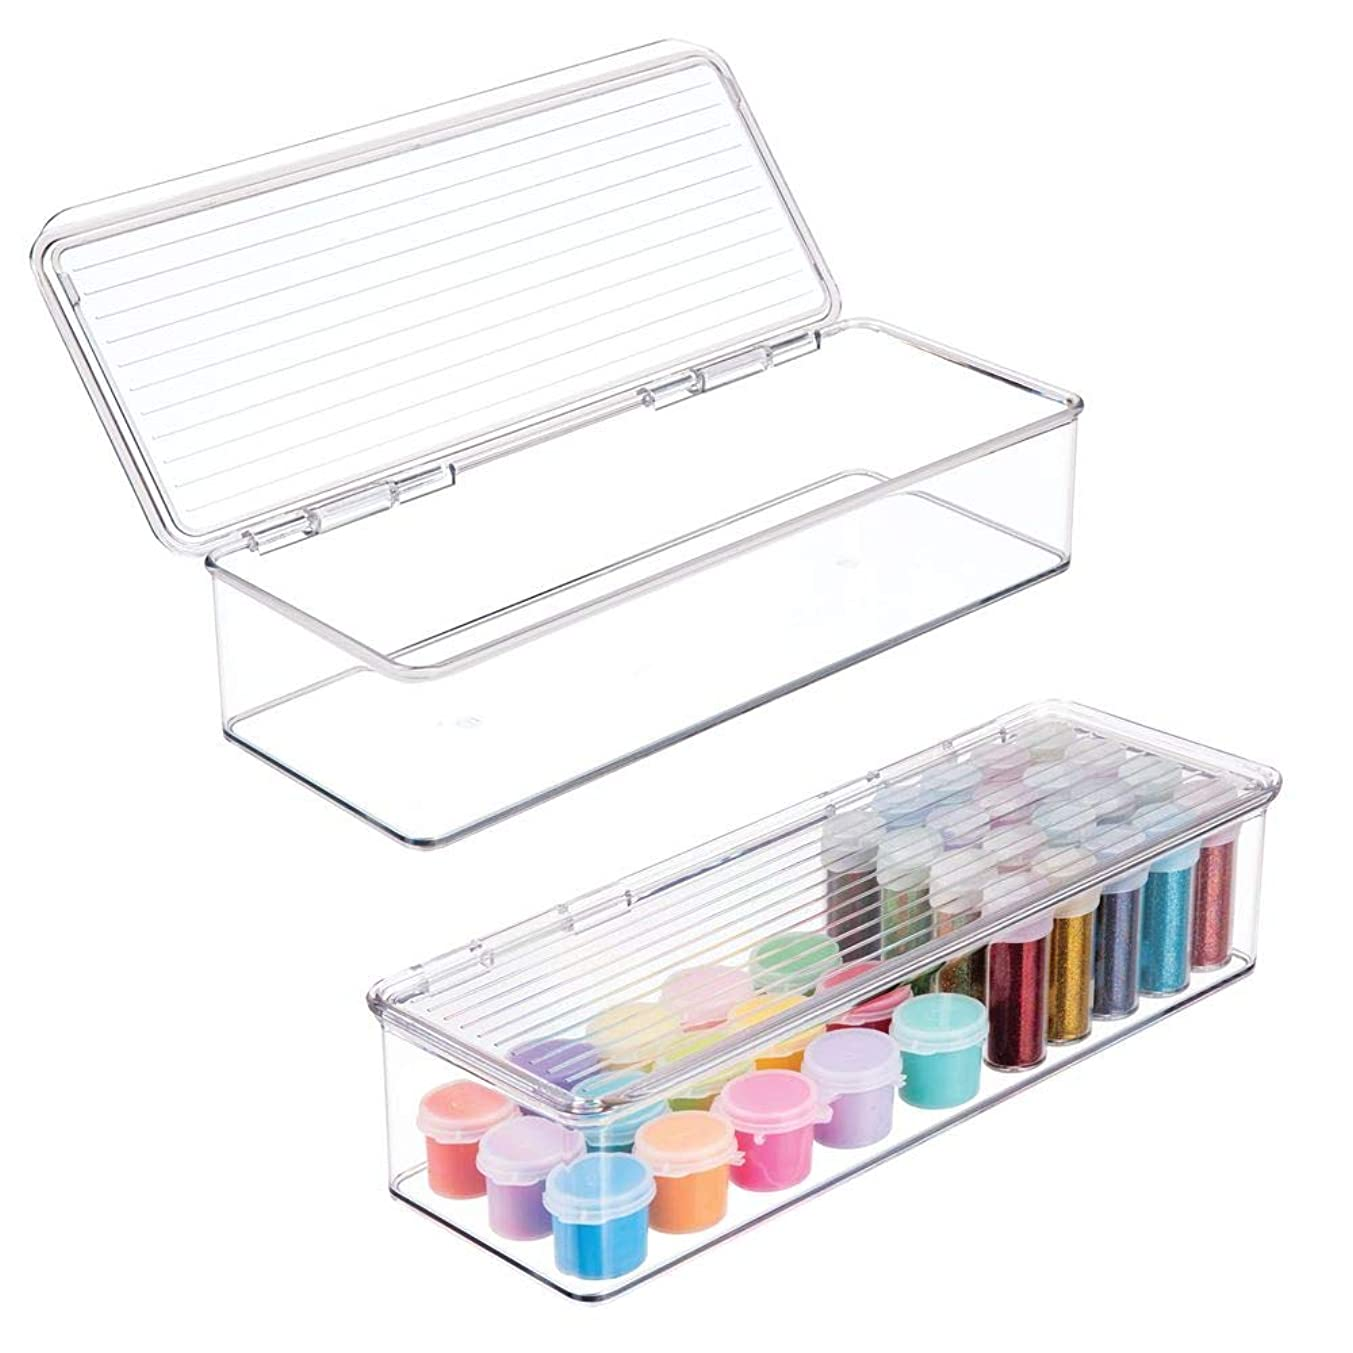 mDesign Wide Stackable Plastic Craft, Sewing, Crochet Storage Container Bin with Attached Lid - Compact Organizer and Holder for Thread, Beads, Ribbon, Glitter, Clay - Small, 3